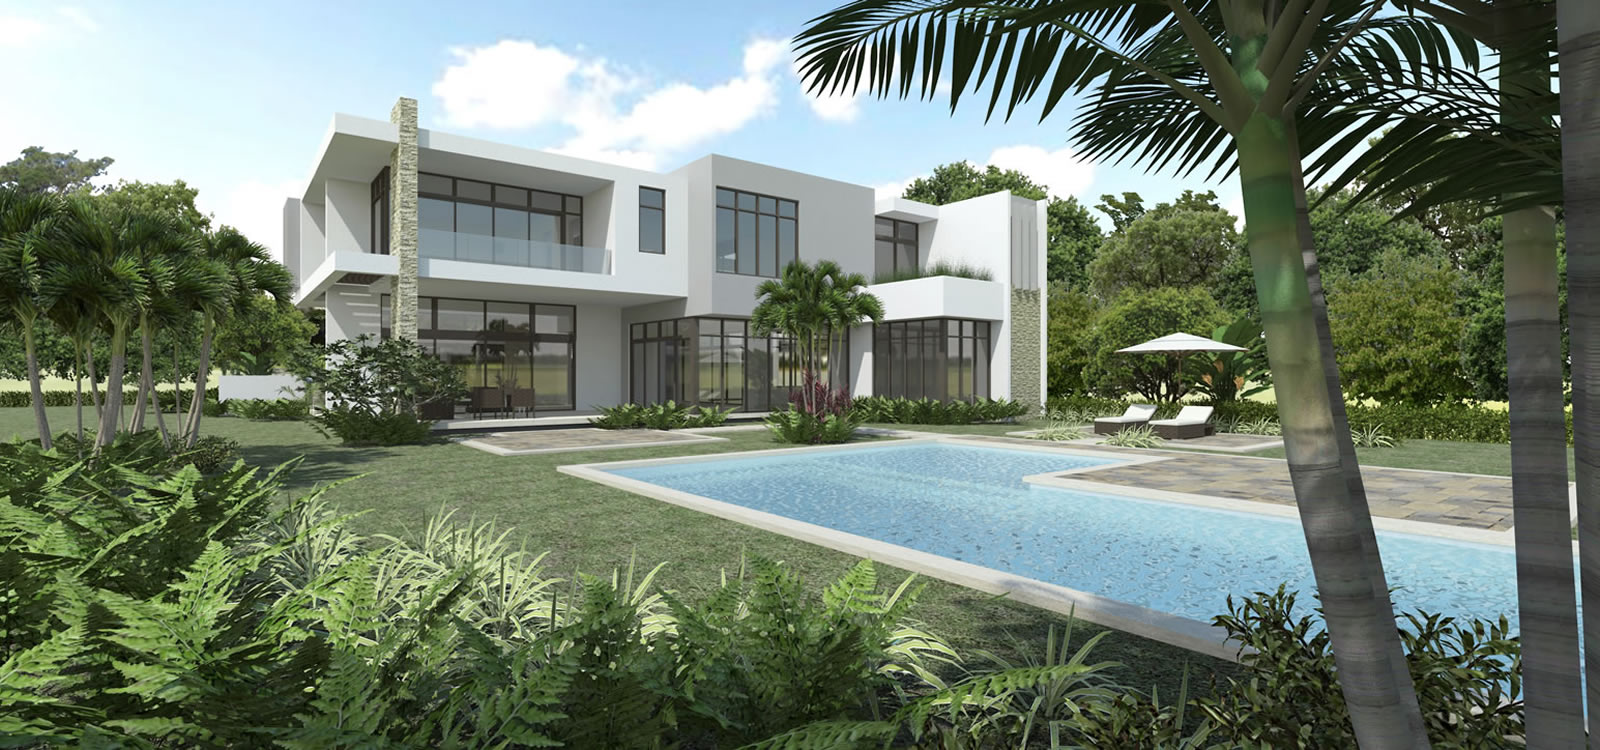 Commercial Properties For Sale Puerto Rico